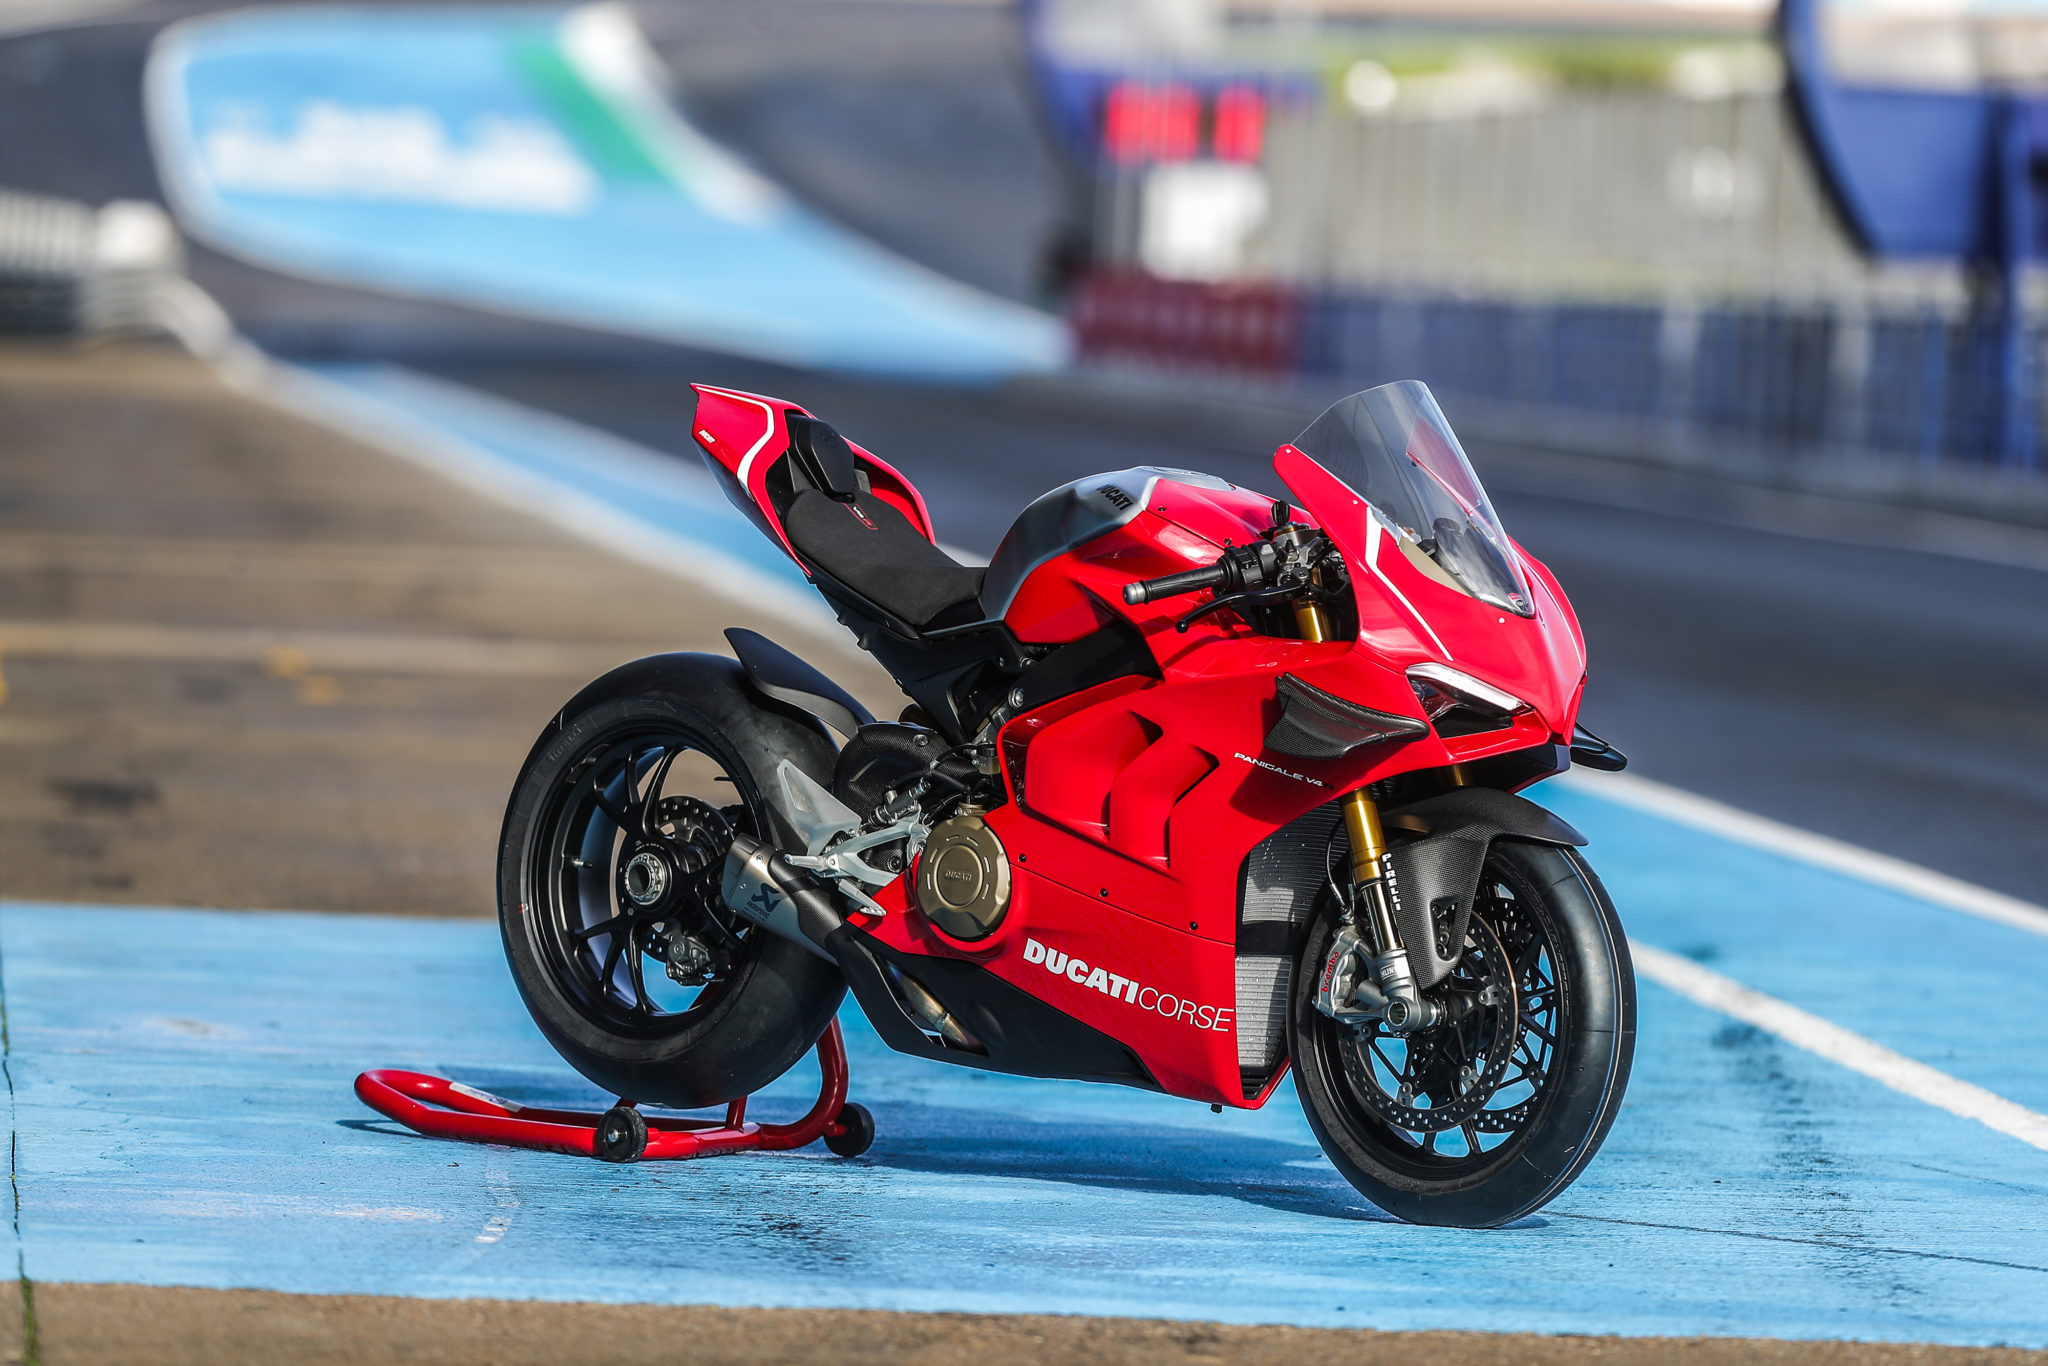 Ducati gives the Panigale V4 R a last minute upgrade